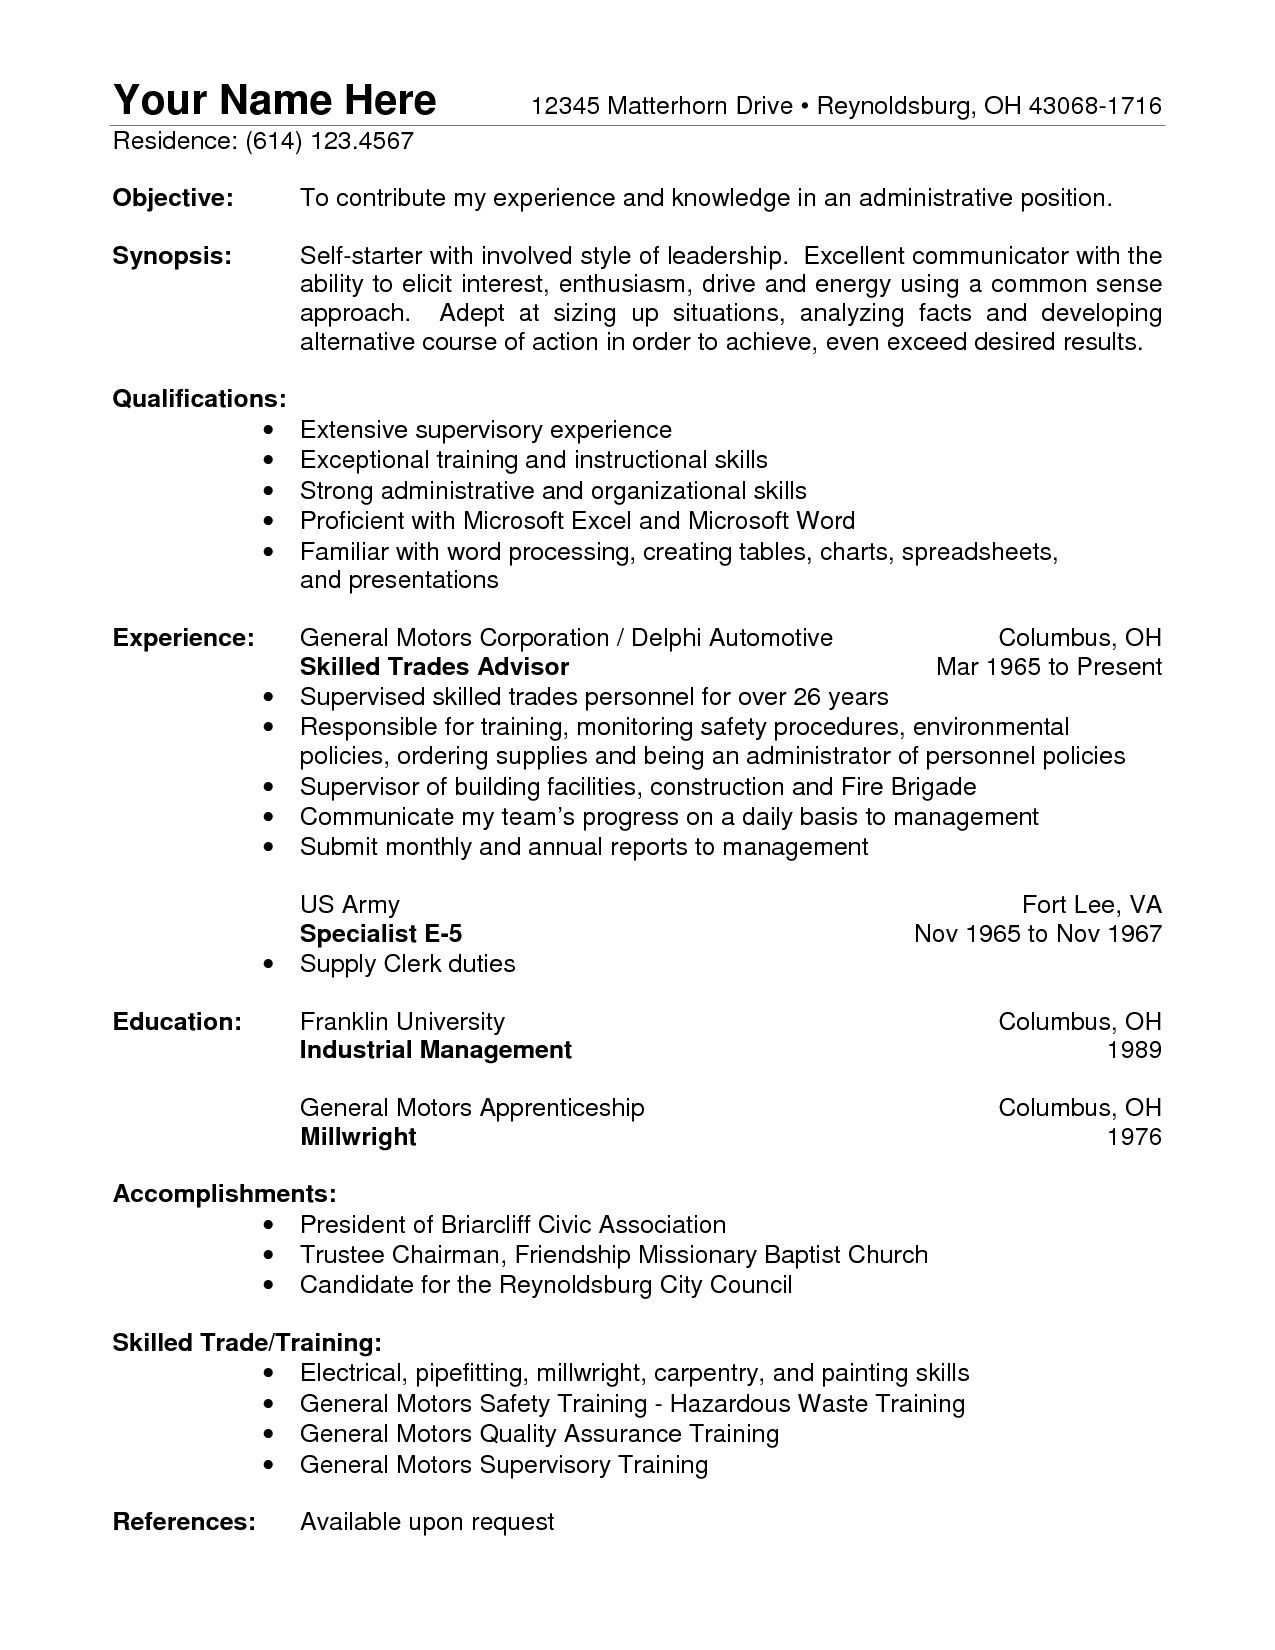 Objective For Warehouse Resume Fair Warehouse Resume Template  Warehouse Resume Template We Provide .